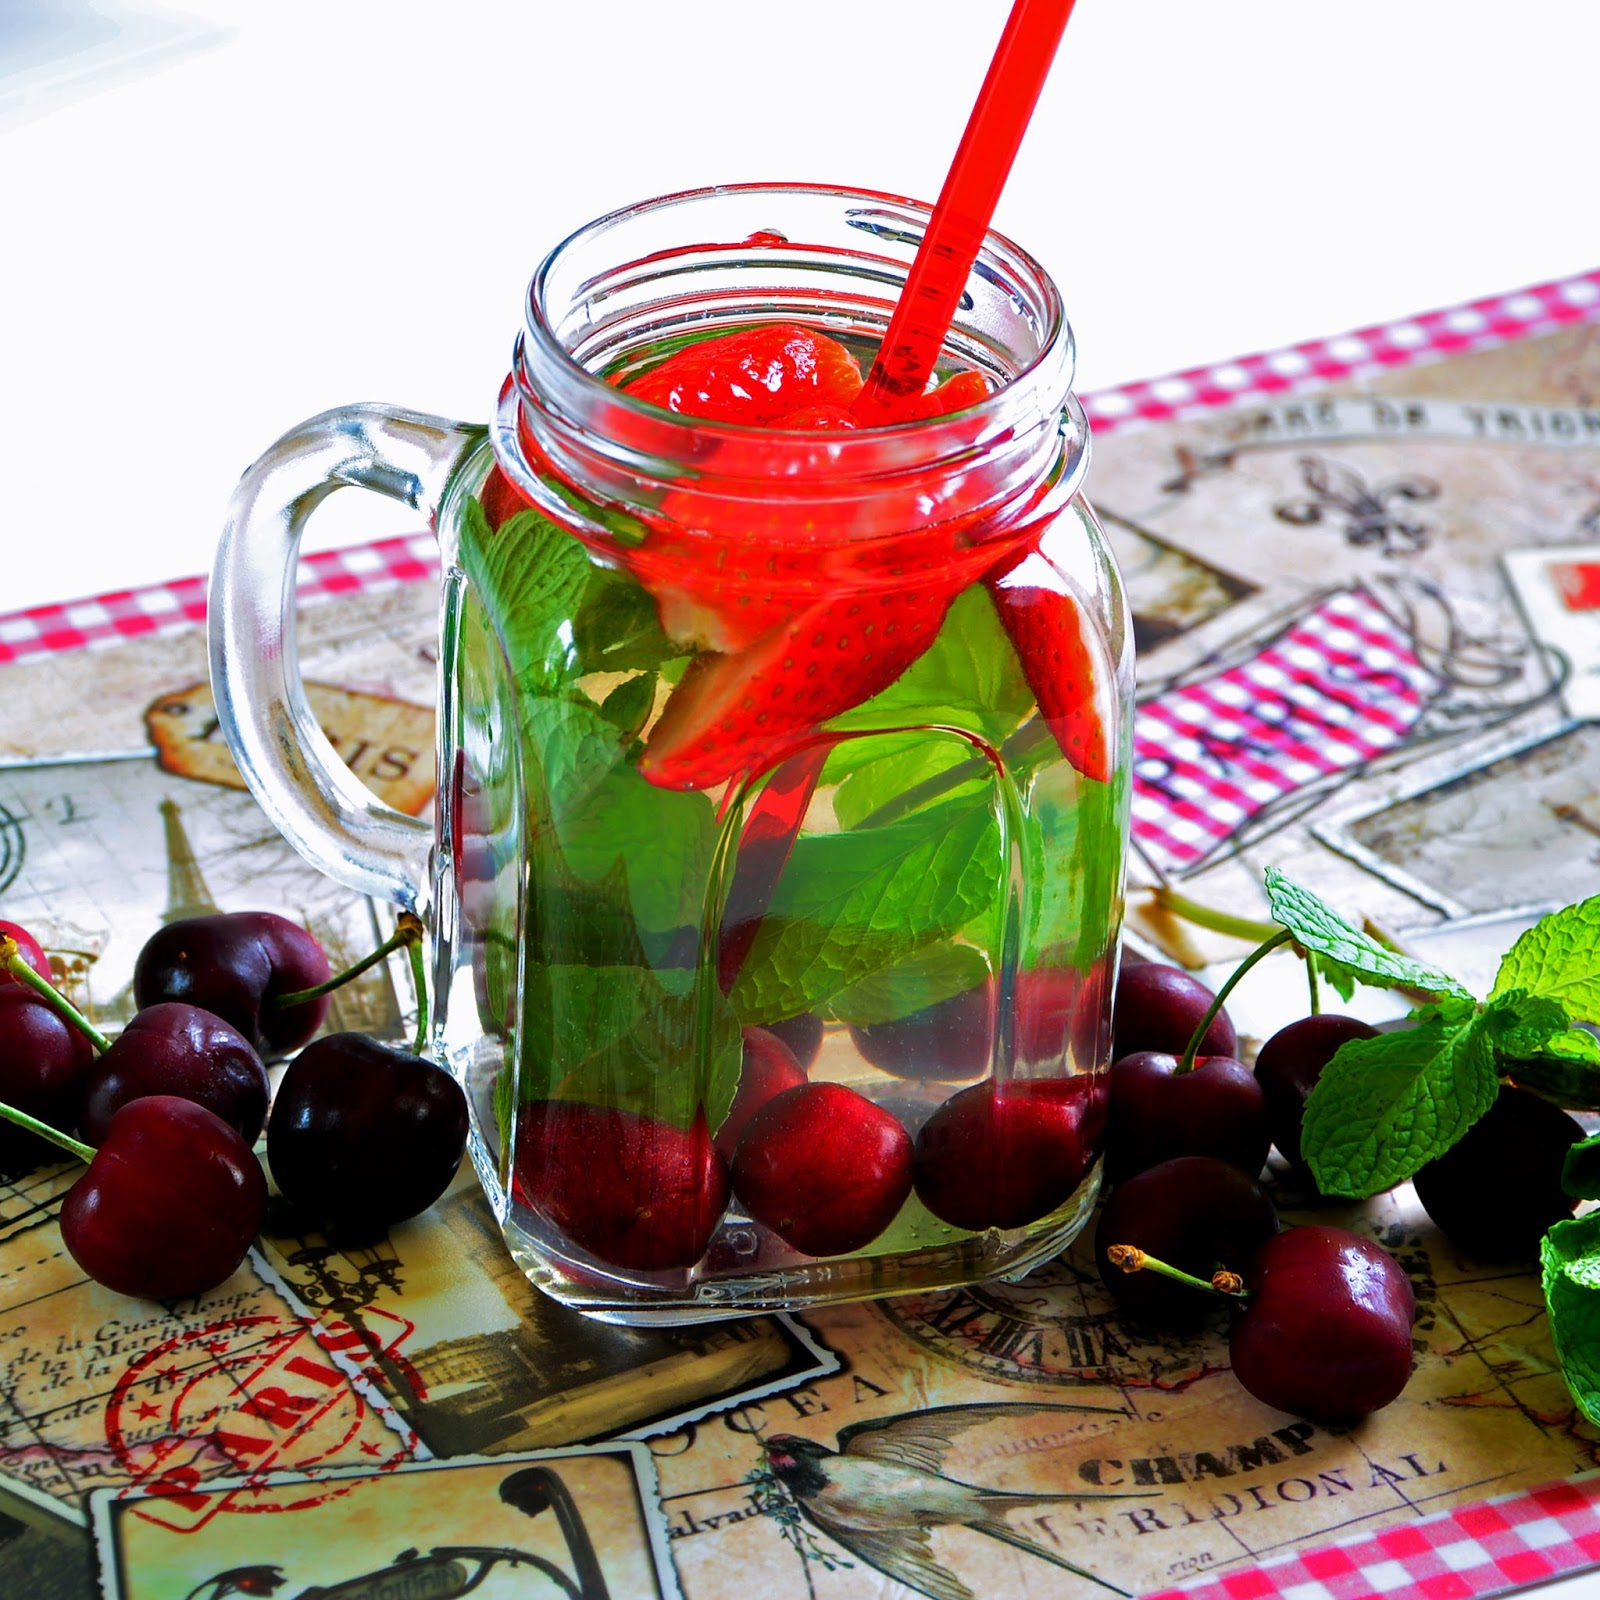 Detoxify With Cherry, Strawberry Detox Water